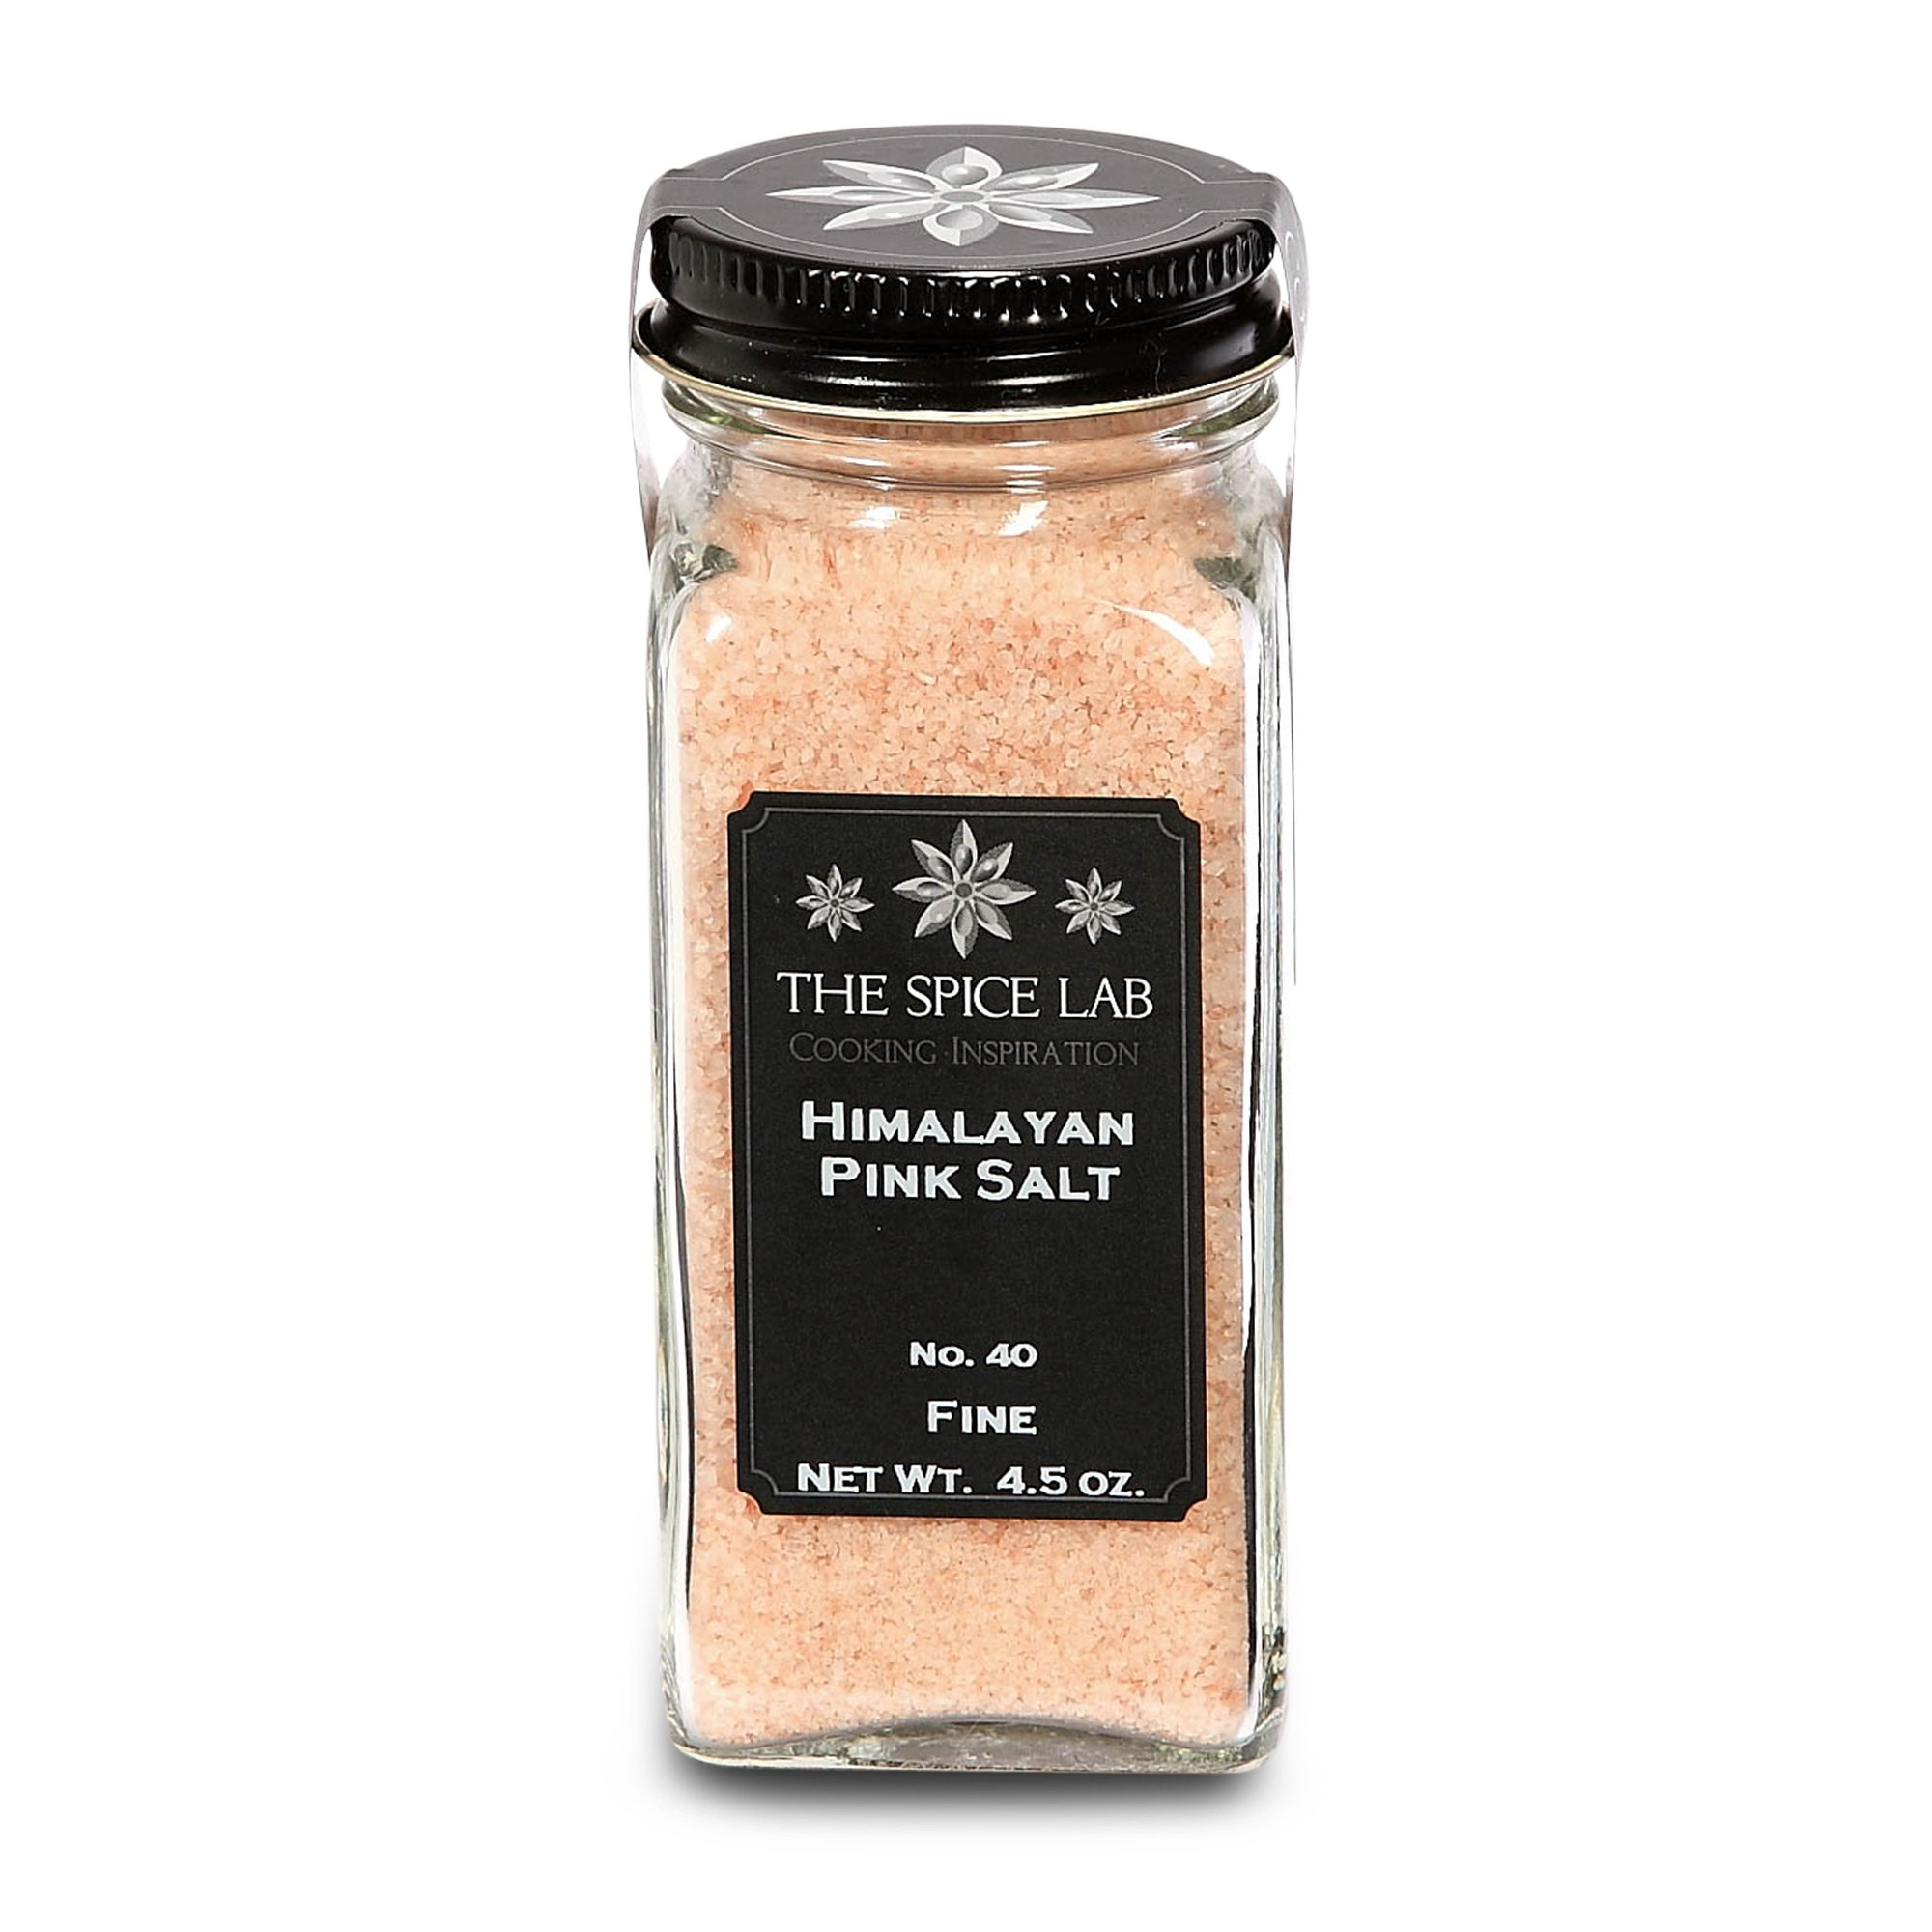 The Spice Lab Pink Himalayan Salt - X-fine French Jar - Gourmet Pure Crystal - Nutrient and Mineral Dense for Health - Kosher and Natural Certified .5mm